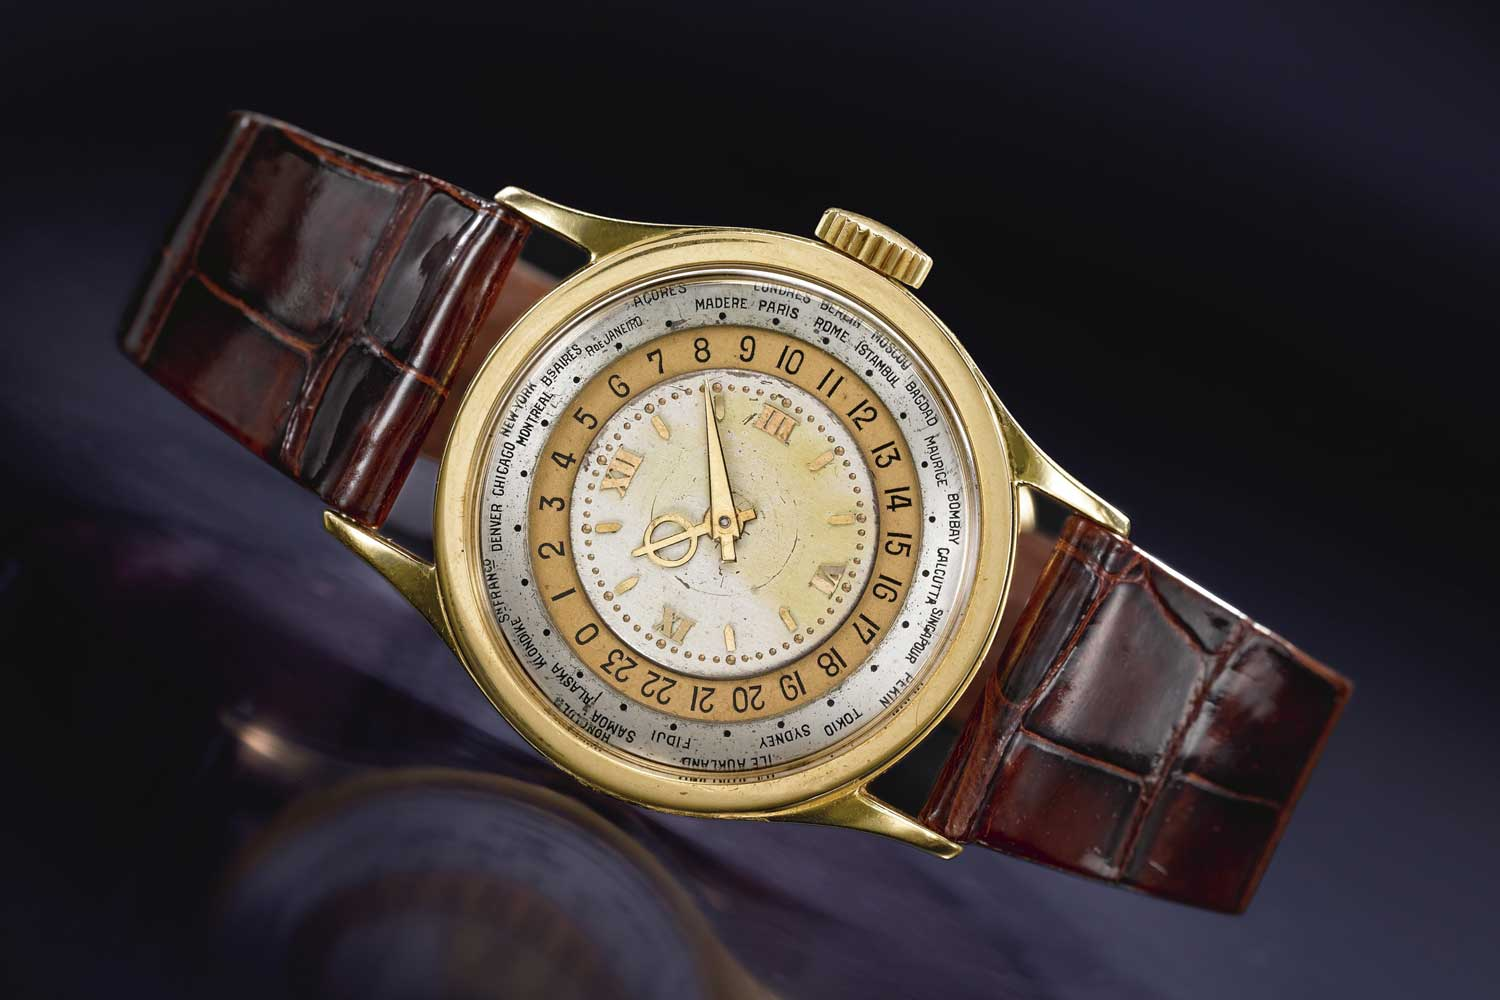 The reference 96 was one of the first truly successful round wristwatches for Patek Philippe and, in the context of the 1930s, was its icon. This watch was sold at Sotheby's in 2011 for USD 482,500 (Image: Sotheby's )